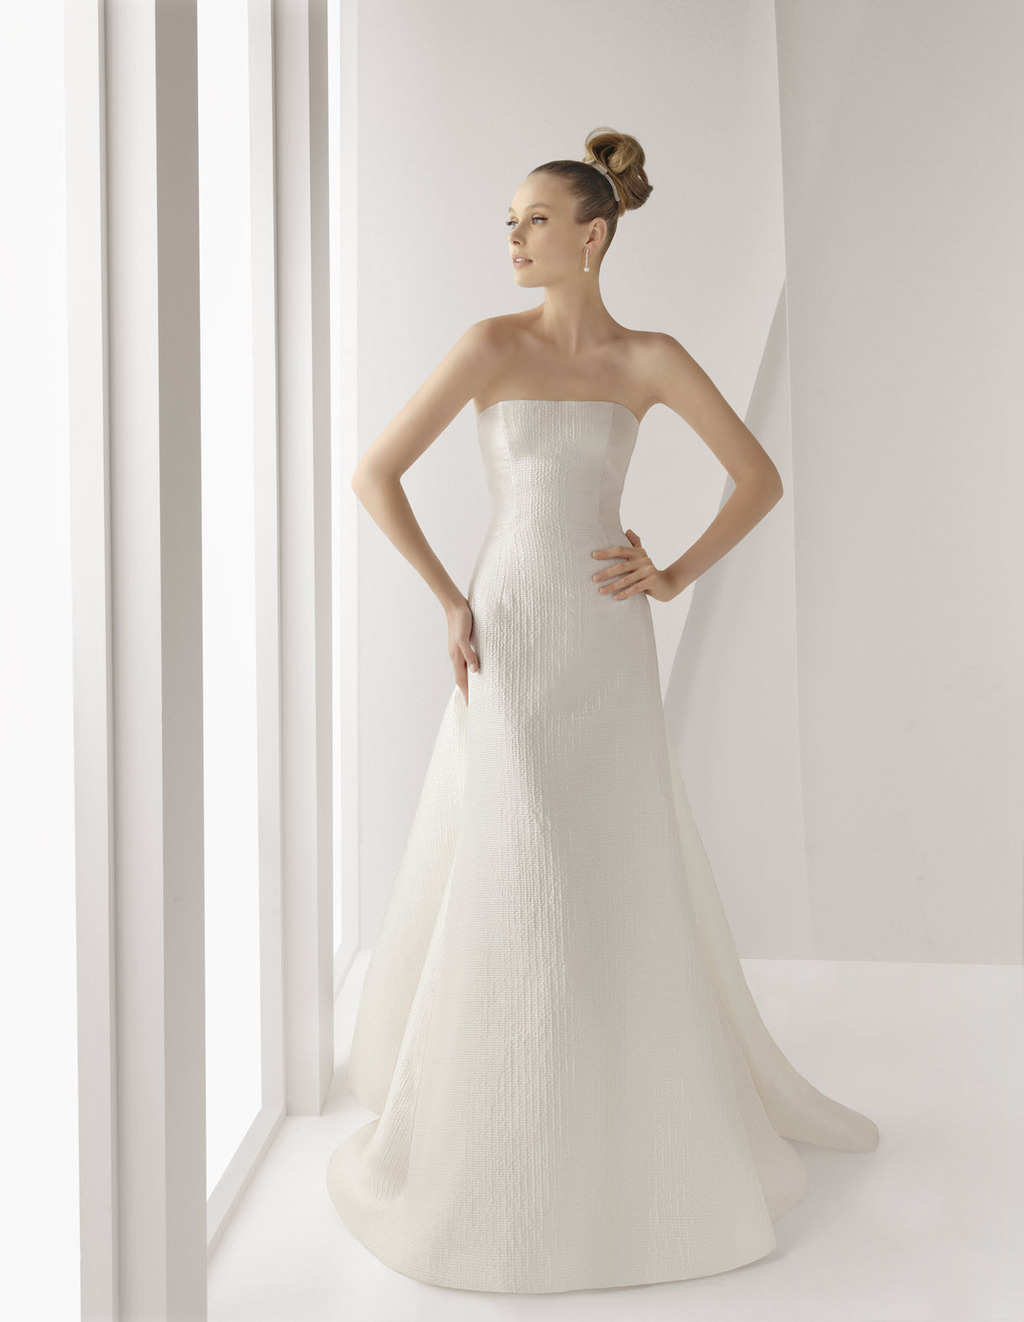 Adonis-spring-2012-wedding-dress-rosa-clara-bridal-gowns-strapless-classic-a-line.full